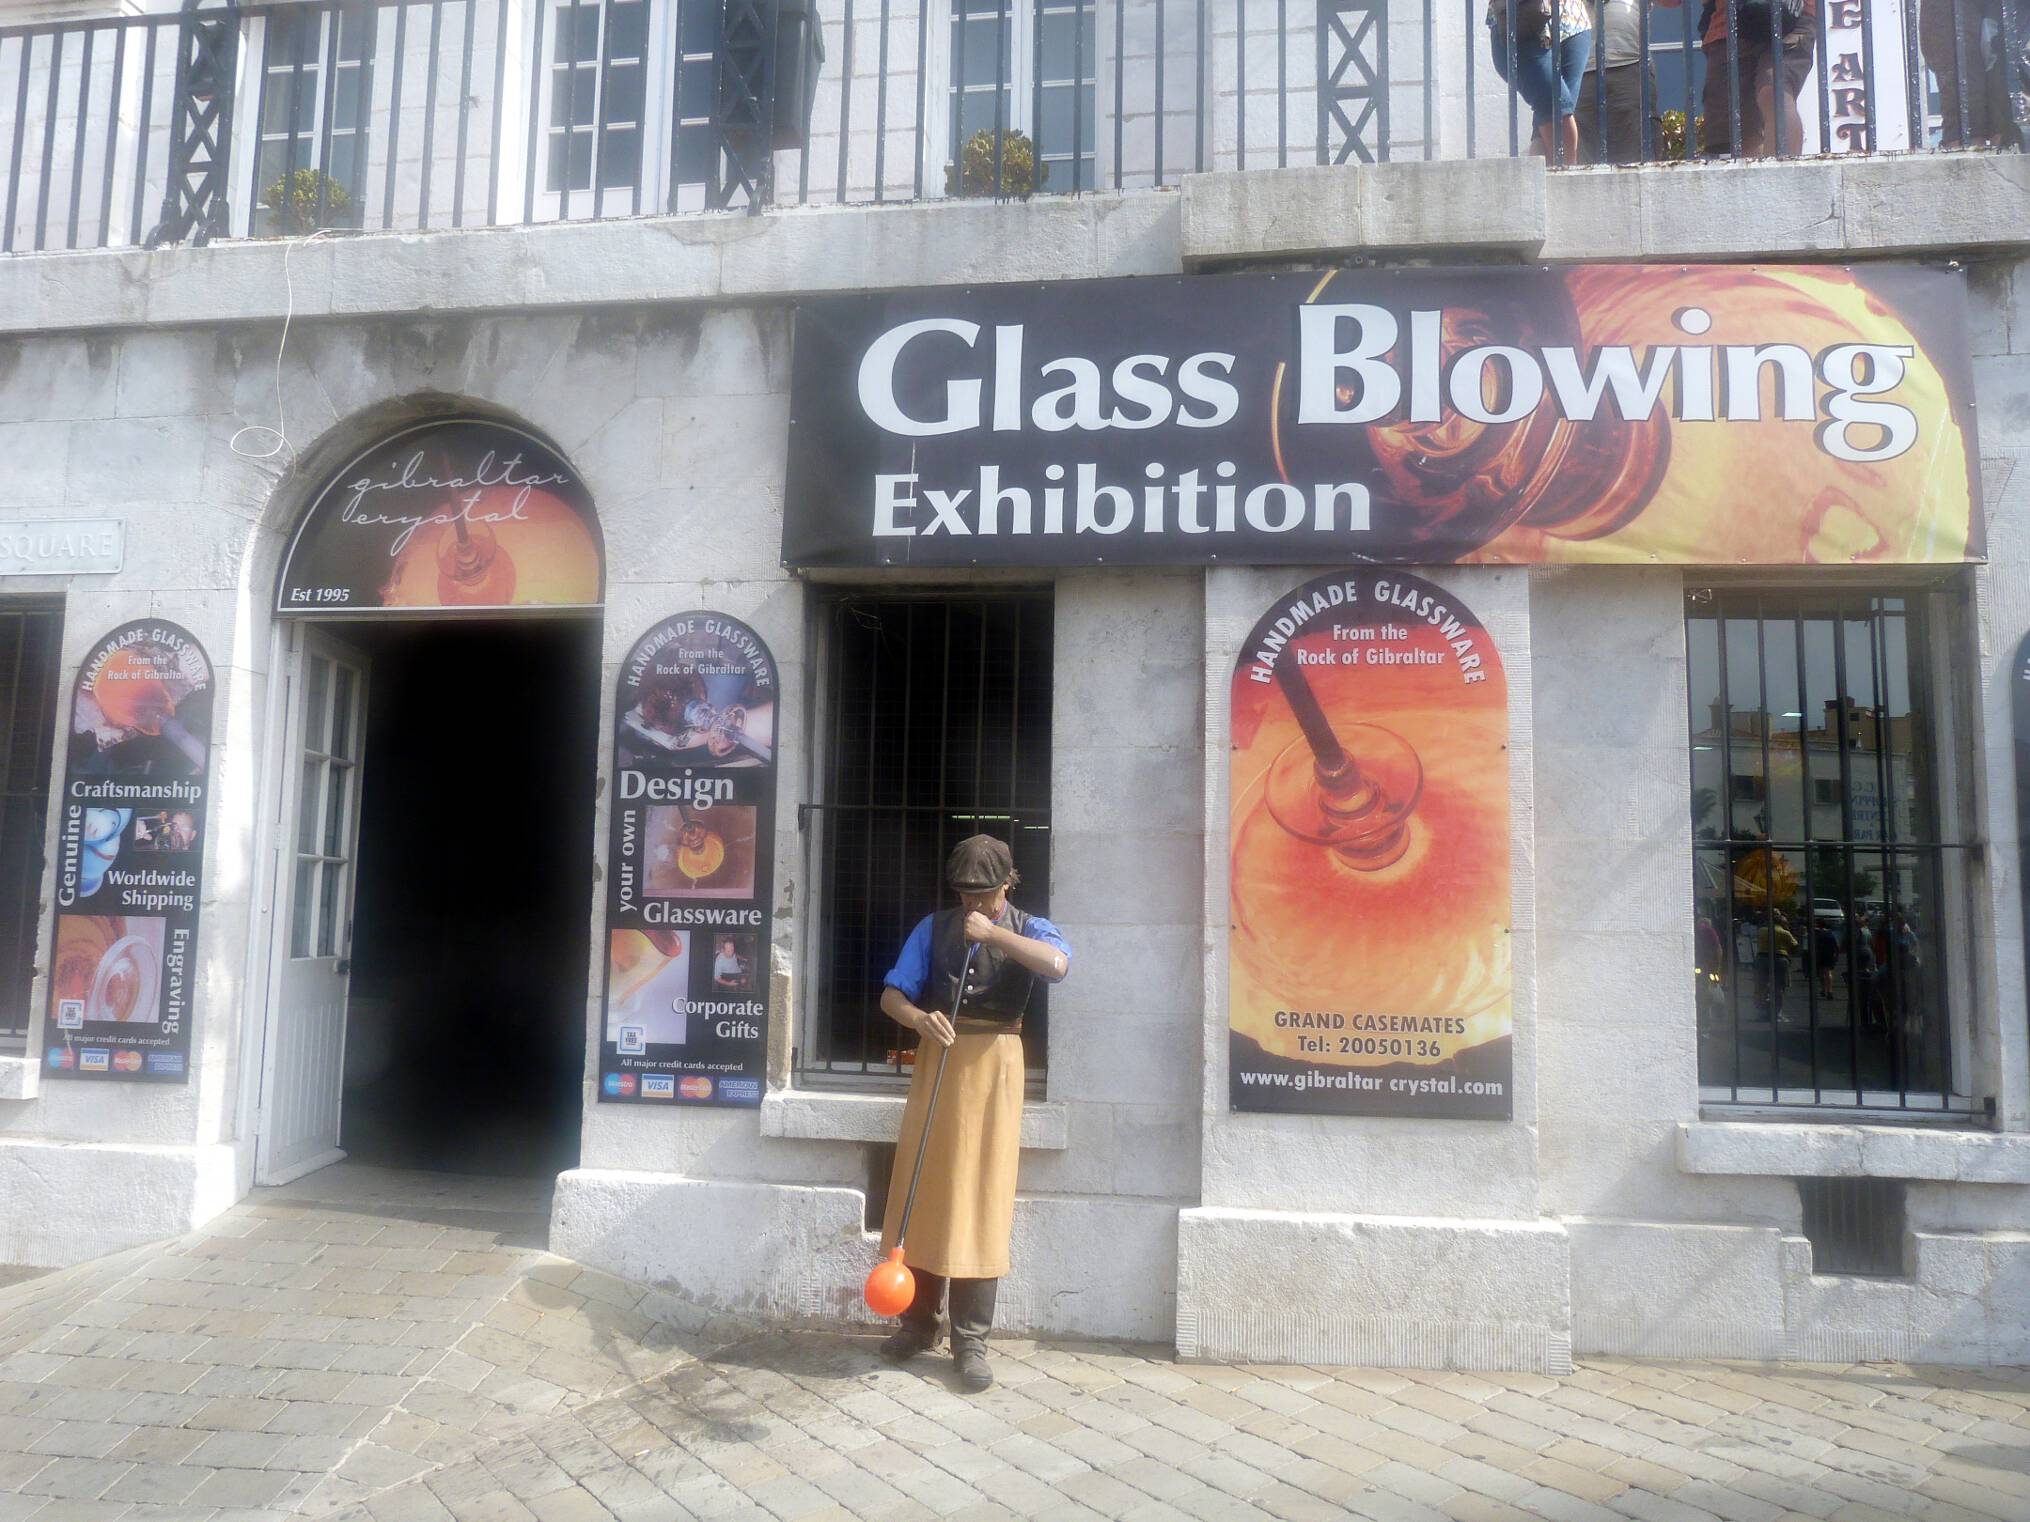 Glass Blowing Exhibition на Кейсмейтс Скуеър